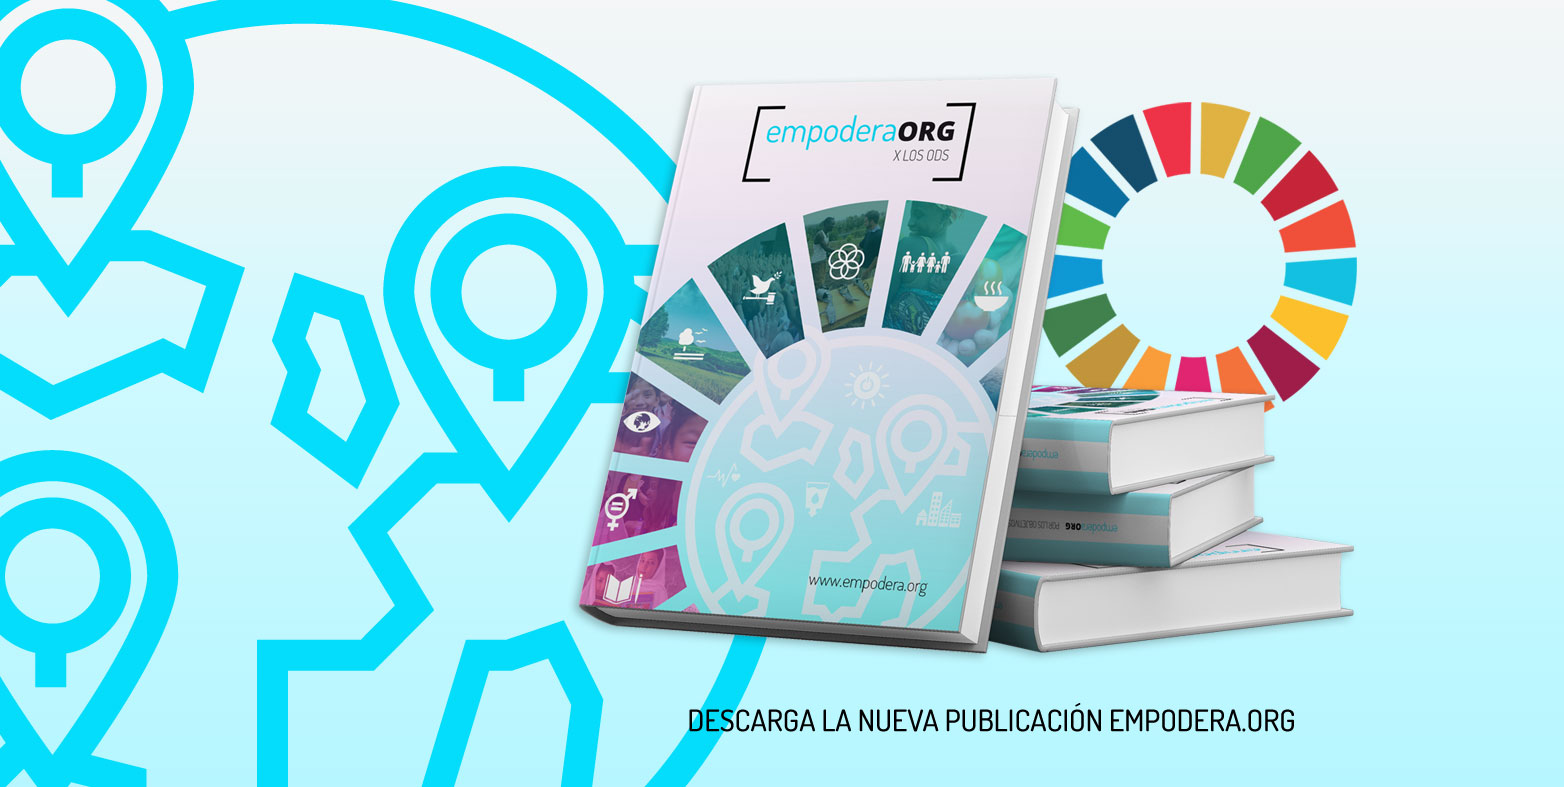 Introducing the new Empodera.org book: EmpoderaORG for the Sustainable Development Goals